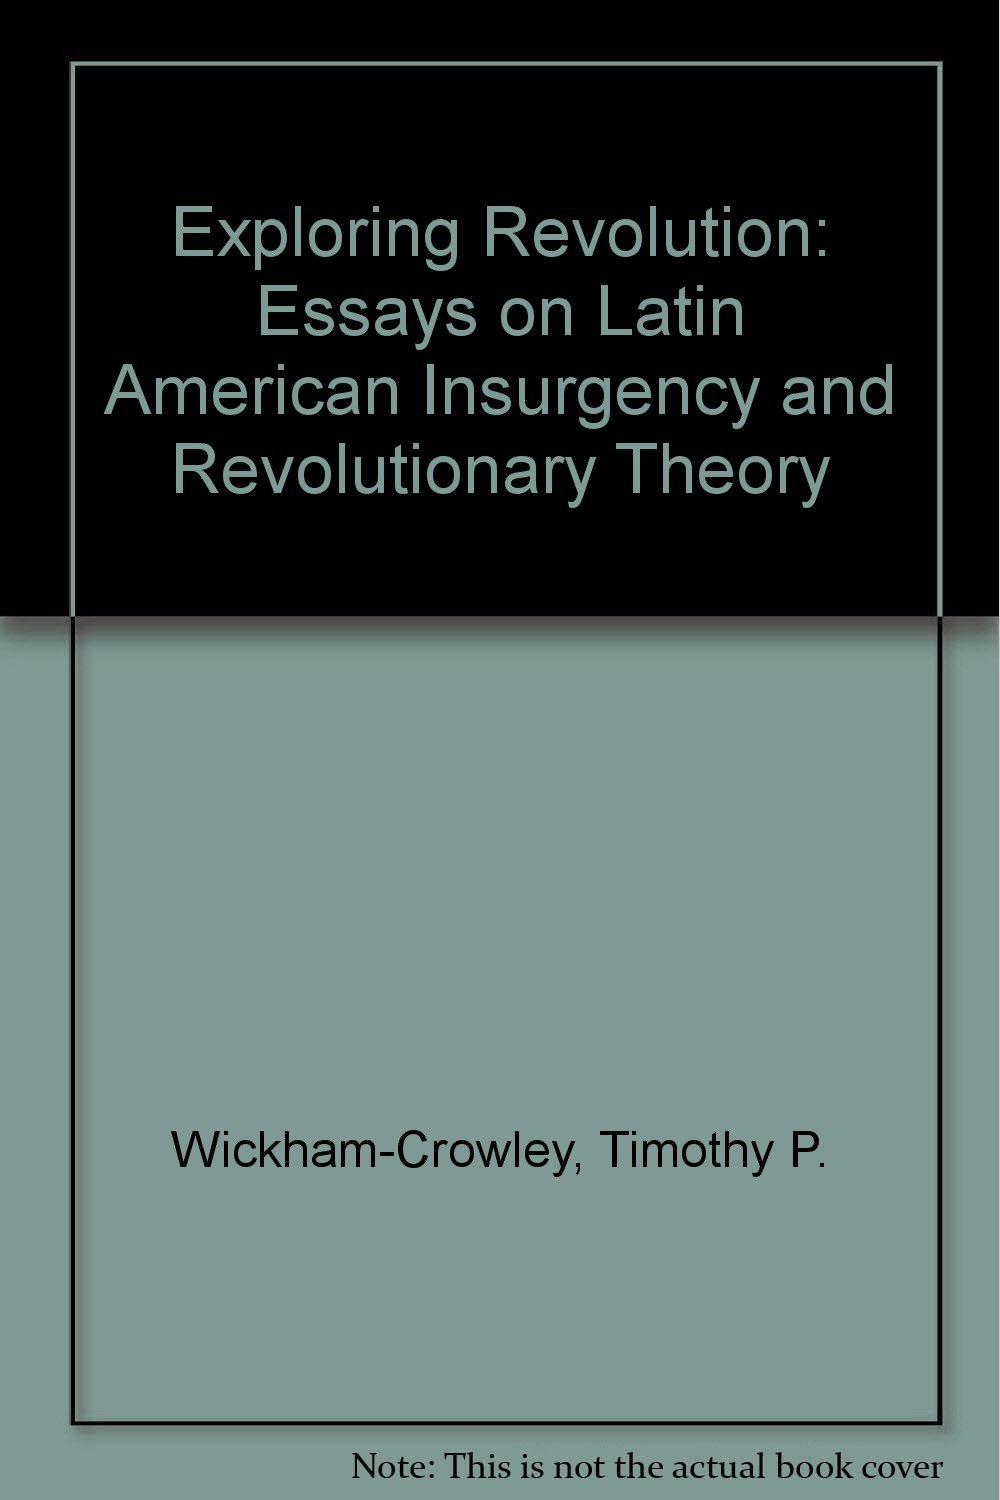 exploring revolution essays on latin american insurgency and revolutionary theory